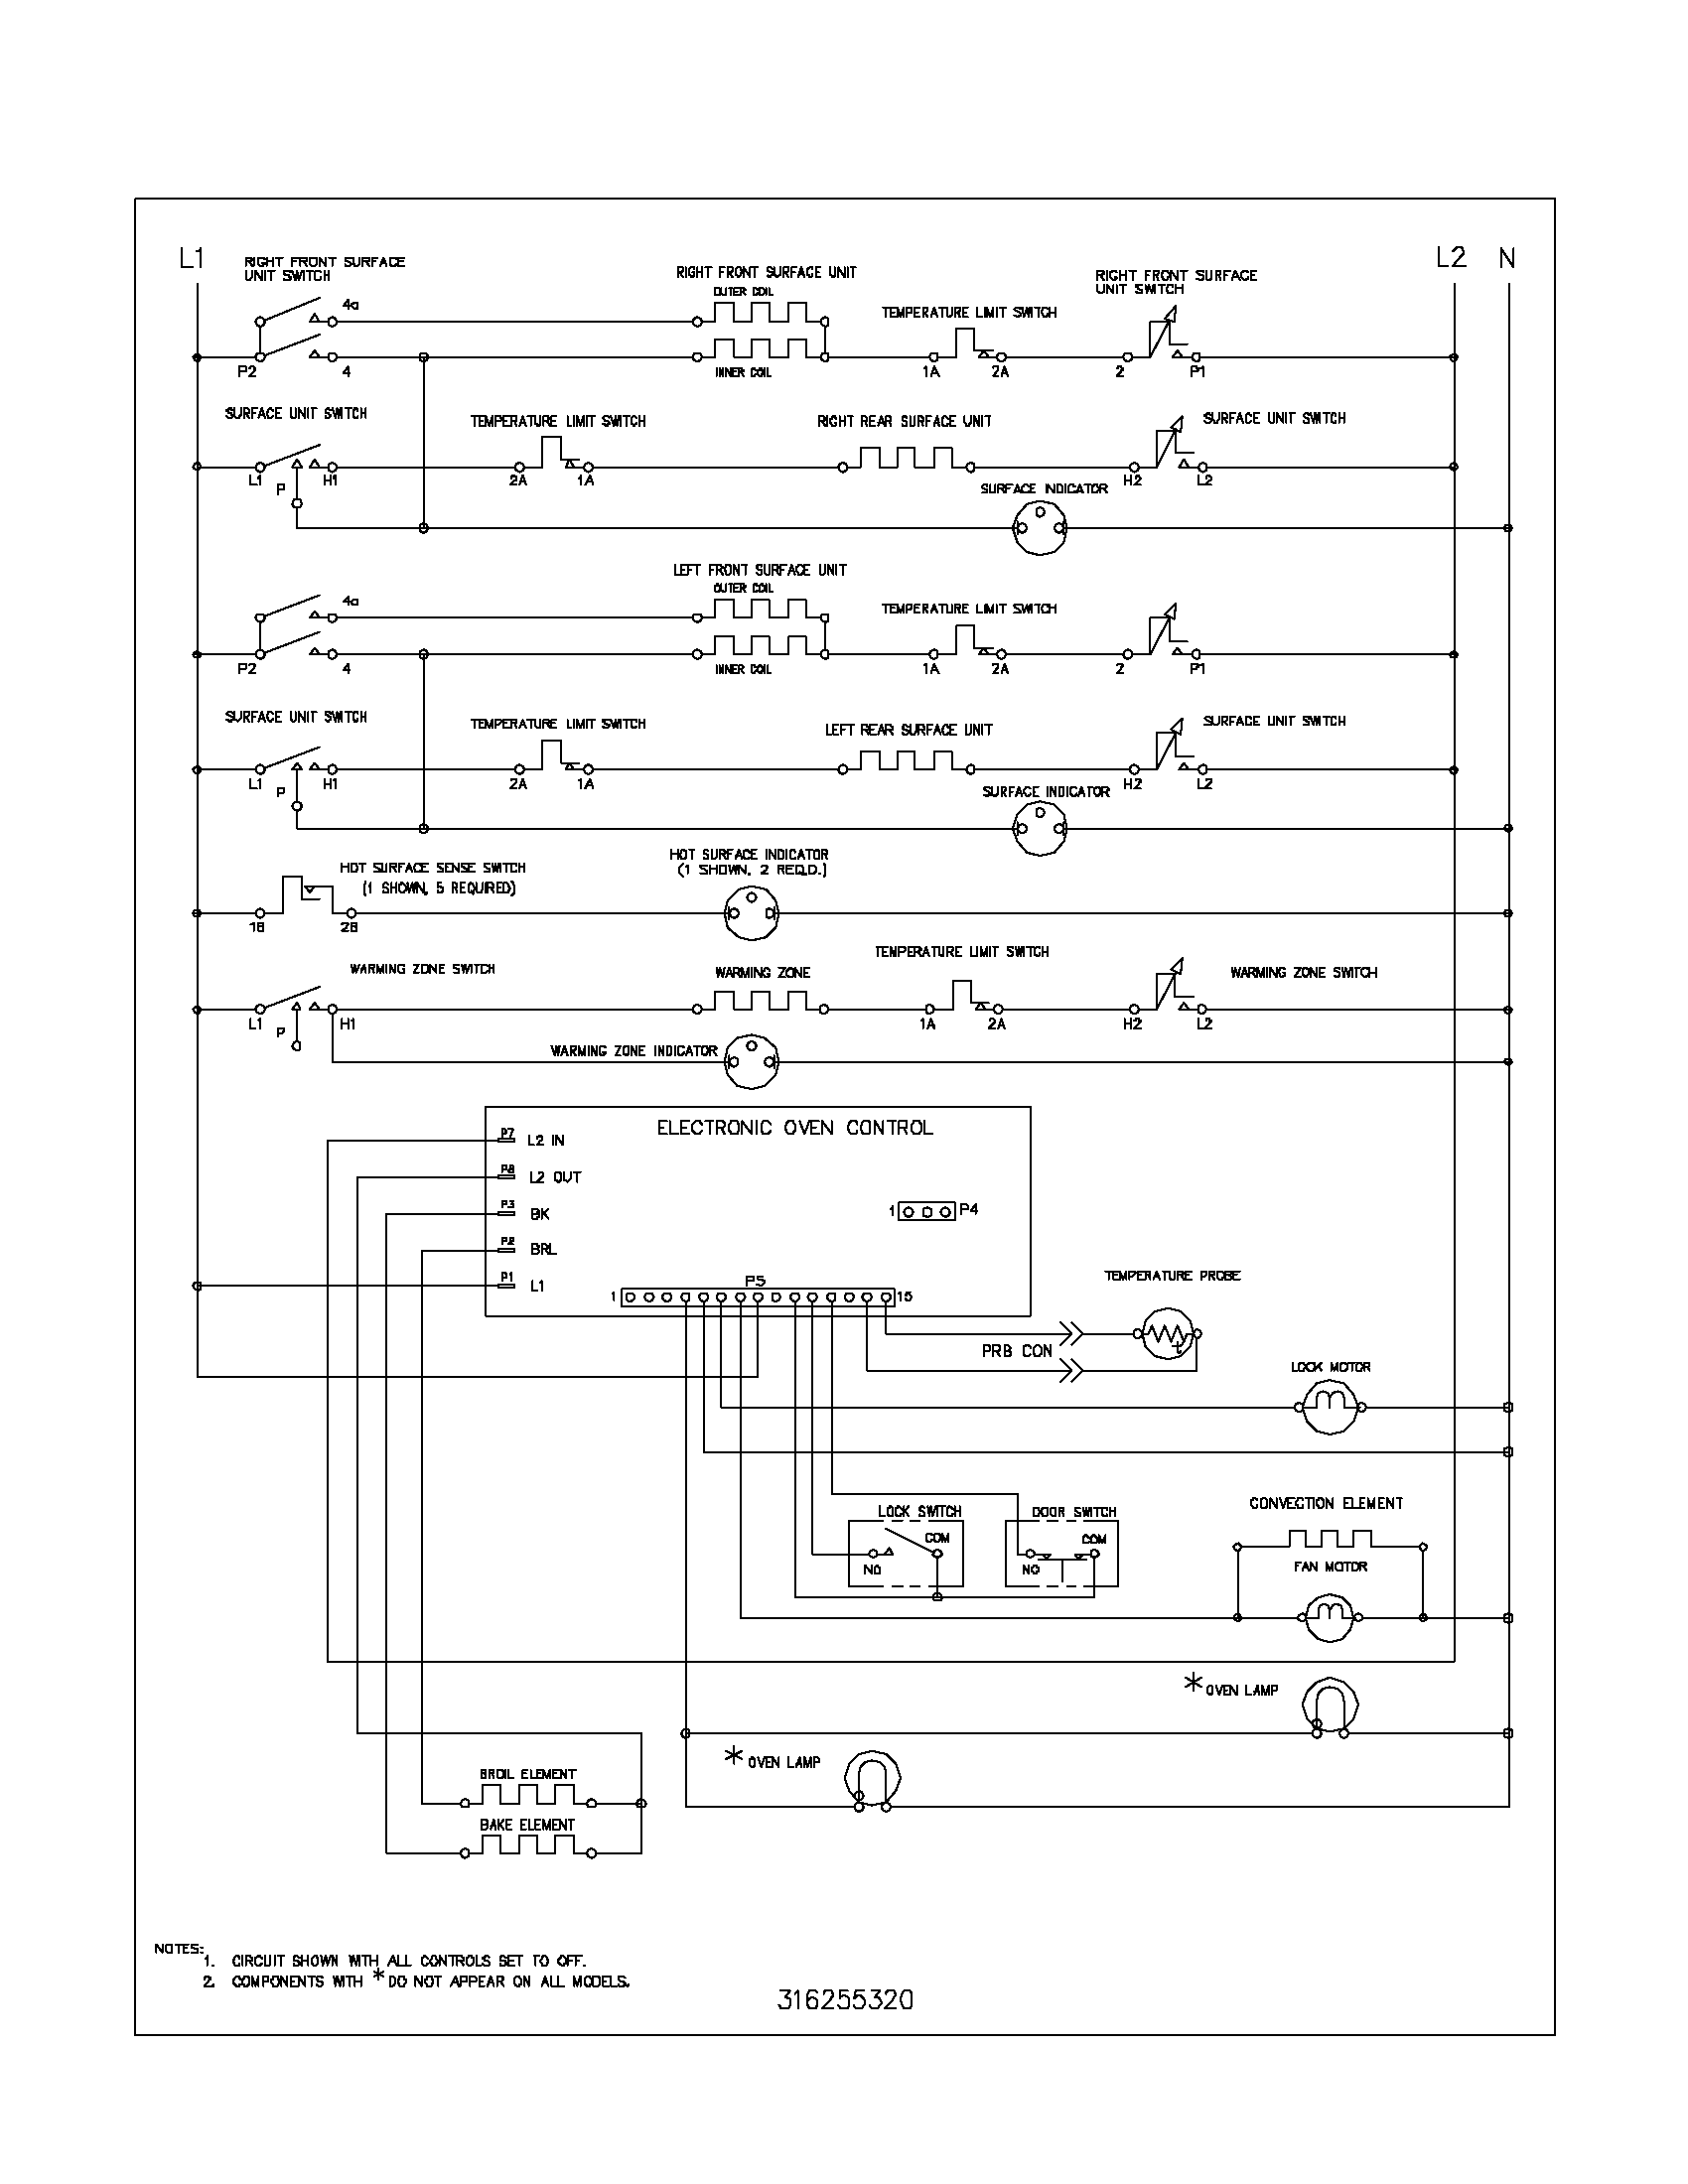 wiring diagram for whirlpool duet dryer heating element wirdig whirlpool dryer schematic wiring diagram get image about wiring